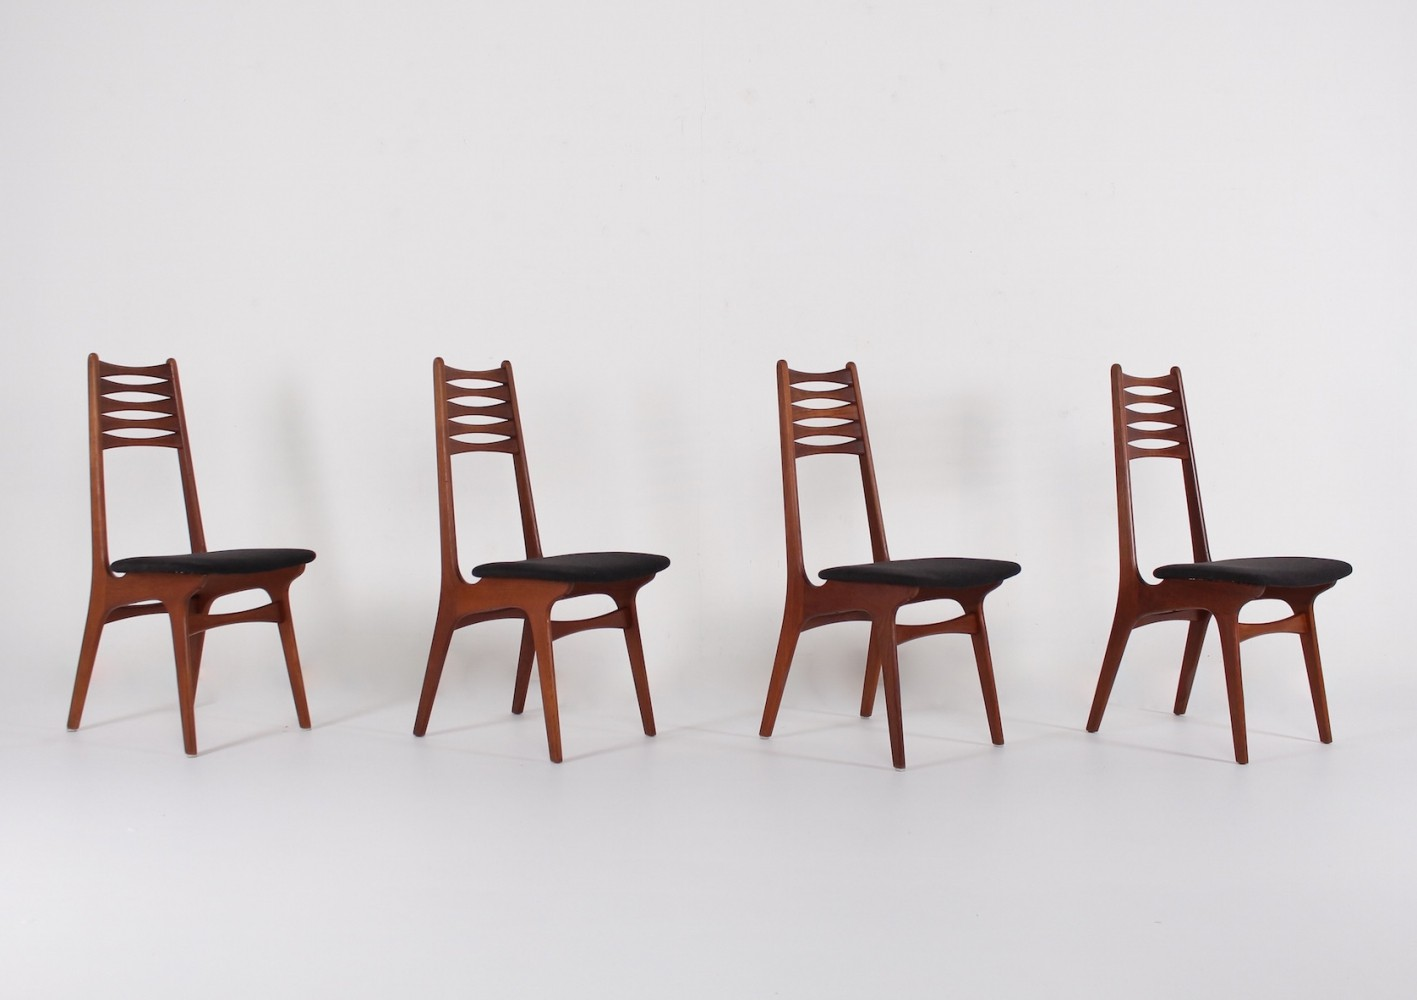 Set of 4 Model 83 dining chairs by Niels O. Møller for Boltings Stolefabrik, 1960s